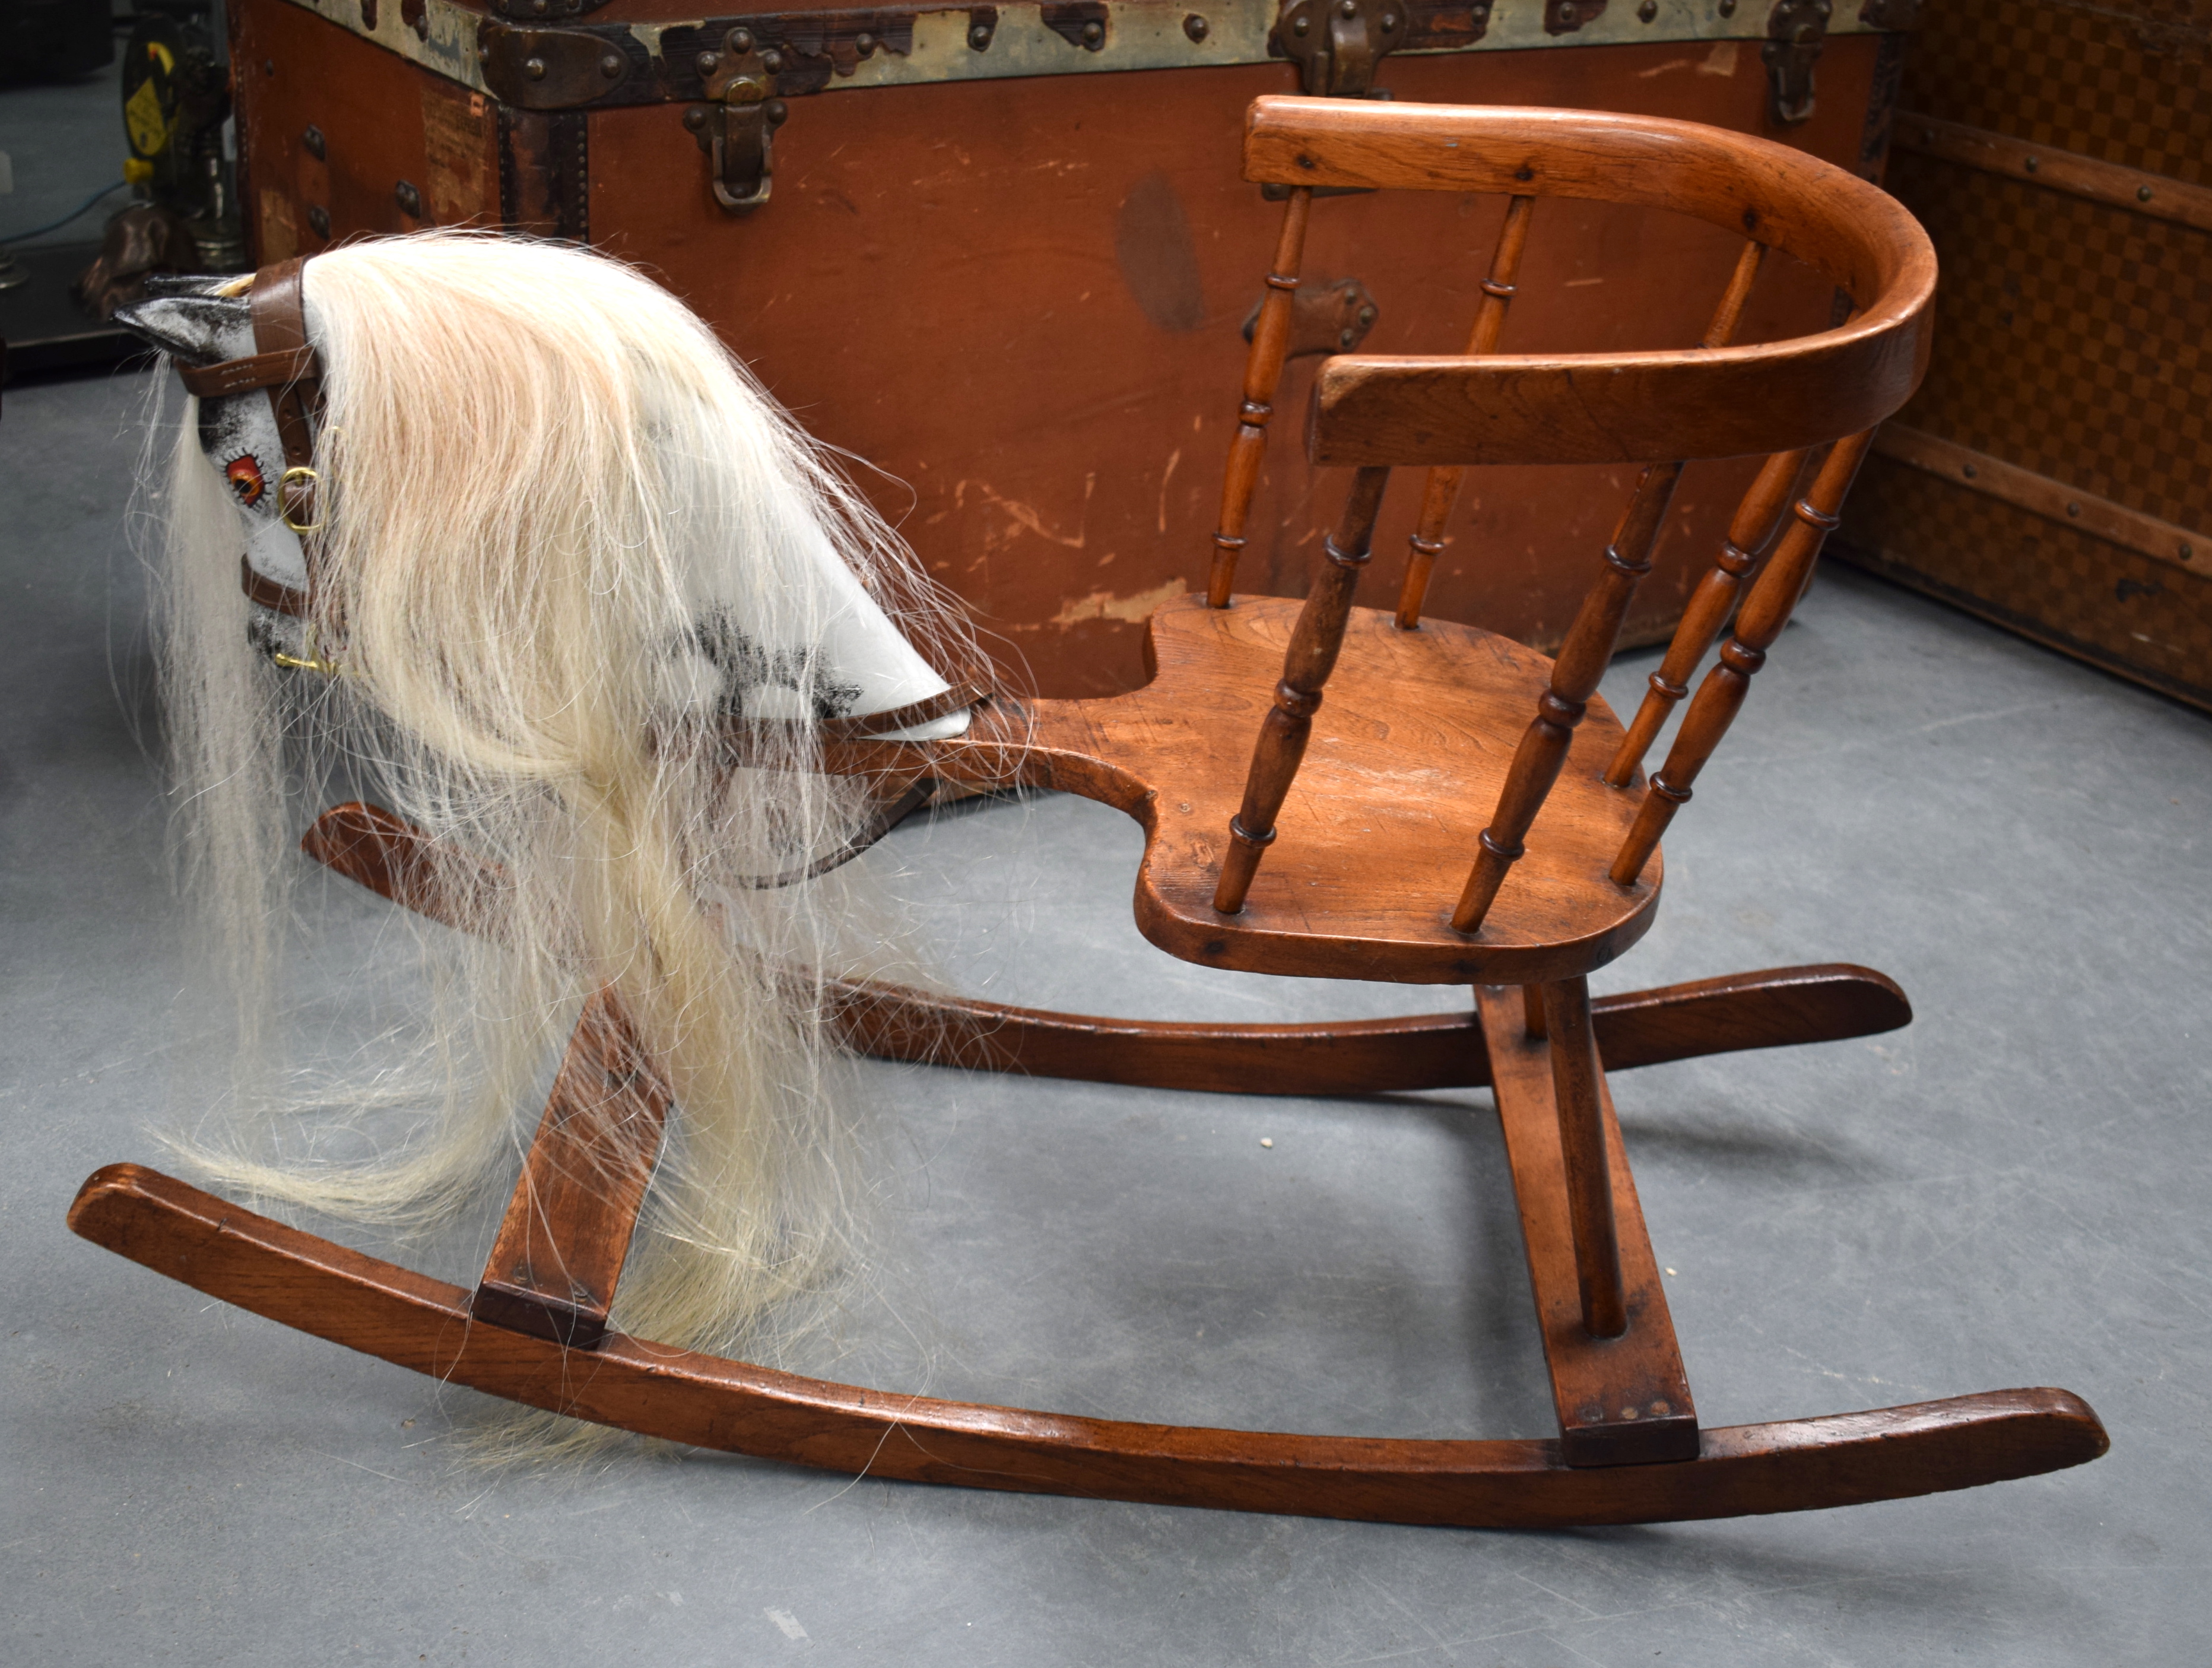 Lot 633 - AN UNUSUAL EDWARDIAN CHILDS ROCKING HORSE CHAIR. 75 cm x 40 cm.